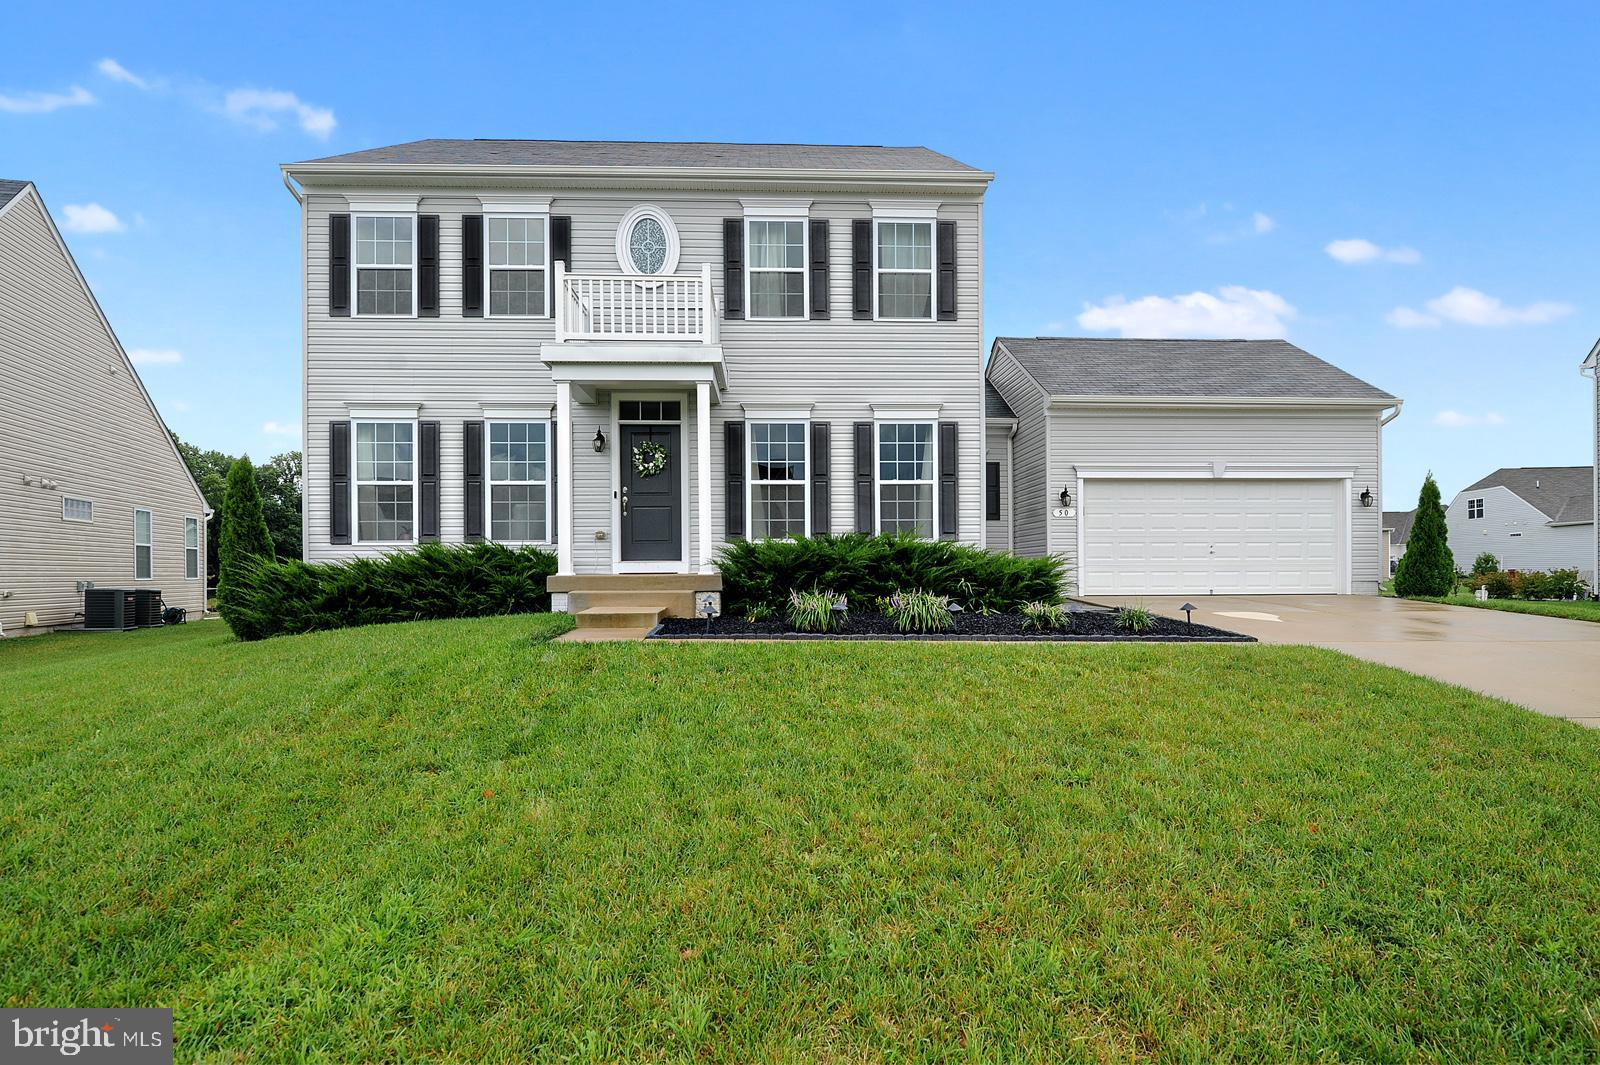 Don't miss out on everything this move-in ready home has to offer in the desirable community of The Reserves at Chestnut Ridge. This gorgeous home was built in 2016 making it just 4 years young and is ready for it's new owners to love and enjoy for years to come! Enter into the front foyer which leads to the formal living to your left, the formal dining to your right, both spacious rooms that can be used for whatever suits your family's needs best. Straight ahead is the open concept kitchen and living room. Immediately upon entering you will notice the gorgeous dark flooring that runs throughout the main floor. The living room, kitchen and dining areas are all open to one another providing an optimal space for entertaining guests and providing plenty of room to mingle on the main floor. The living room is the perfect place to spend chilly nights next to the gas fireplace. Fall in love with granite counter tops, a wrap around two-tier peninsula with seating, stunning stainless steel appliances, white cabinetry with soft close drawers, pantry, and white subway tile are just some of the fantastic features in this incredible kitchen. Connected to the kitchen is a dining area with plantation shutters on the windows and slider that leads to the deck and backyard, which provides lots of natural light into the room. Also on the main floor is a half bathroom and laundry room with a deep utility sink for added convenience. Downstairs there is a finished basement that features plenty of room for an office space, kids playroom, entertainment/man cave or many other possibilities! The basement also has an unfinished area with a rough-in for a future bathroom. On the second floor you will find the master suite and three additional bedrooms that share a full bathroom. All of the bedrooms are very spacious and have plenty of room to spread out. The full bathroom to be shared with the three additional bedrooms has a dual vanity with granite counter tops. The luxurious master bedroom 